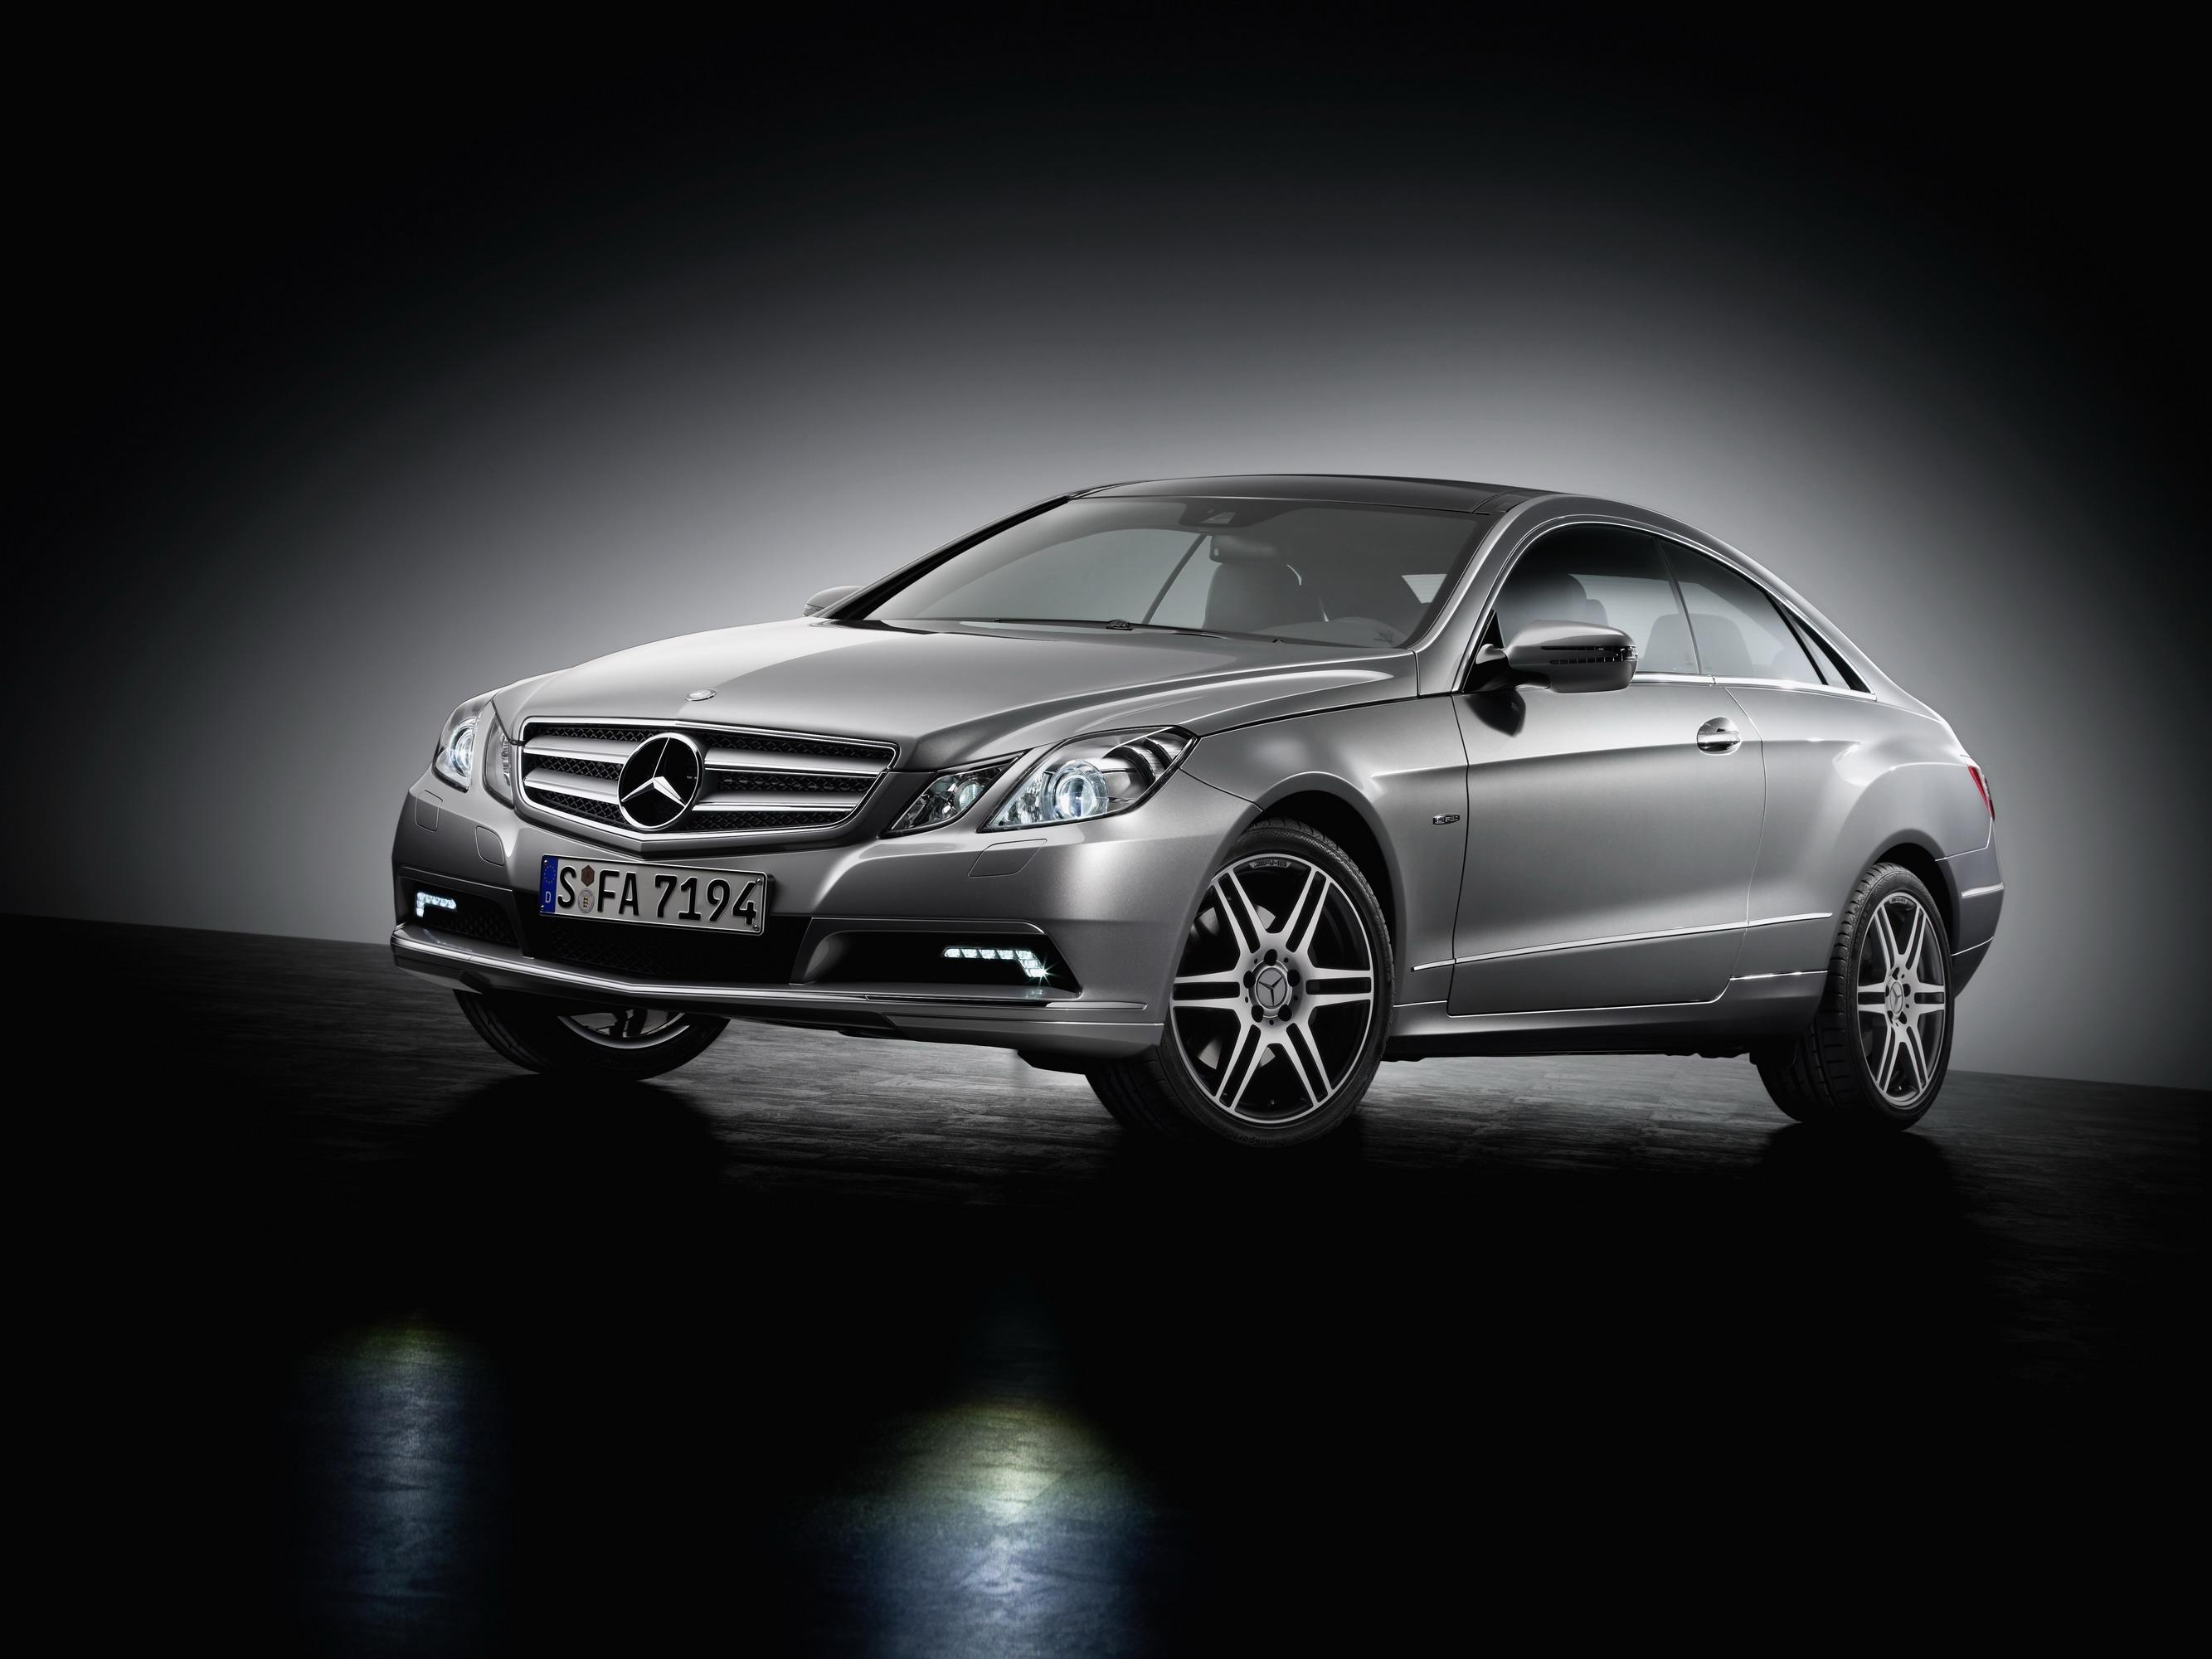 Mercedes-Benz E-Class: Setting the airflow